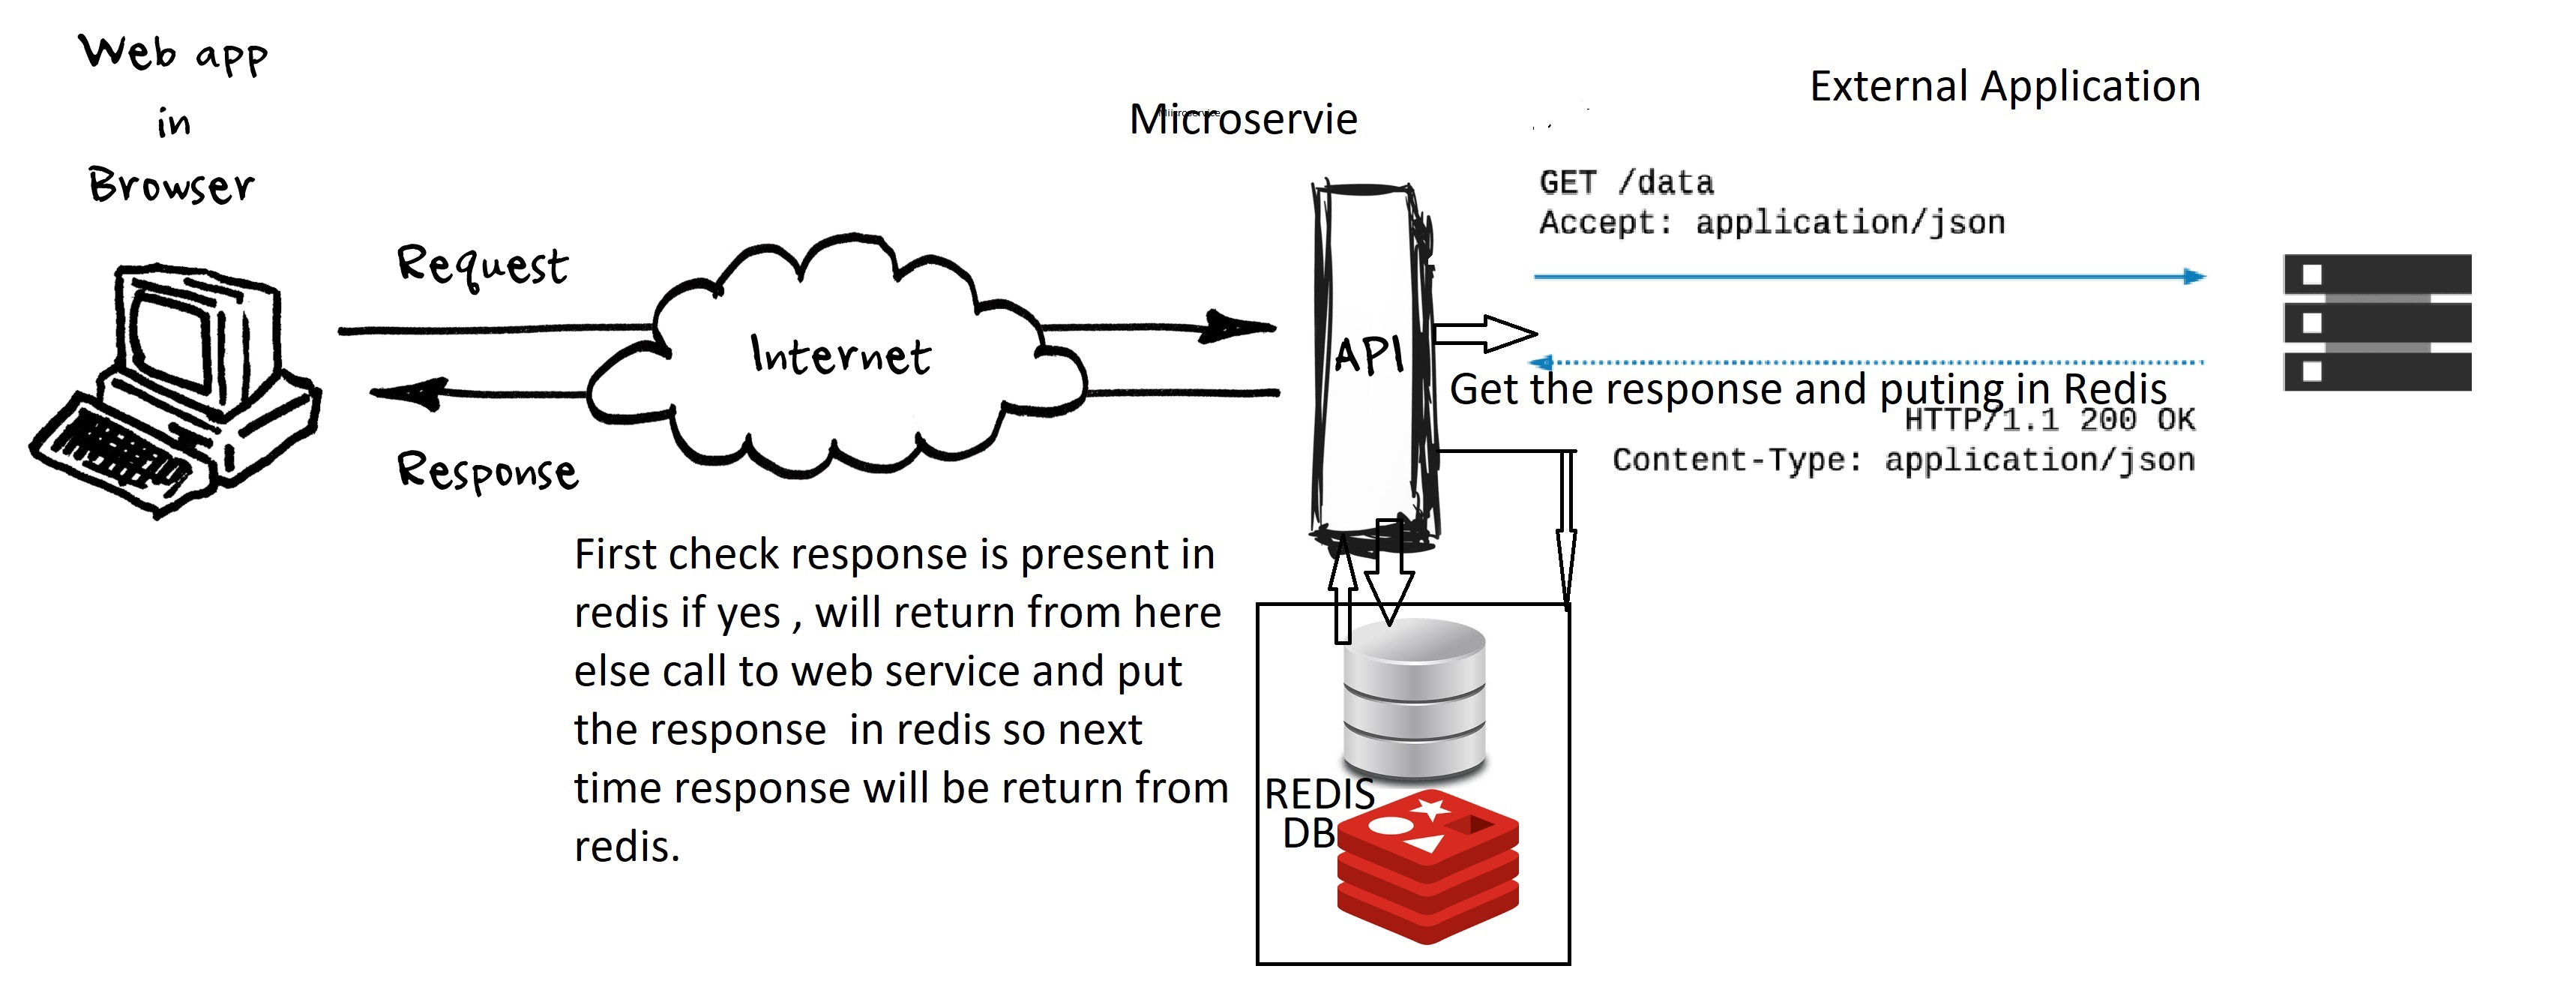 Implementation of Redis in a Microservice/Spring Boot Application